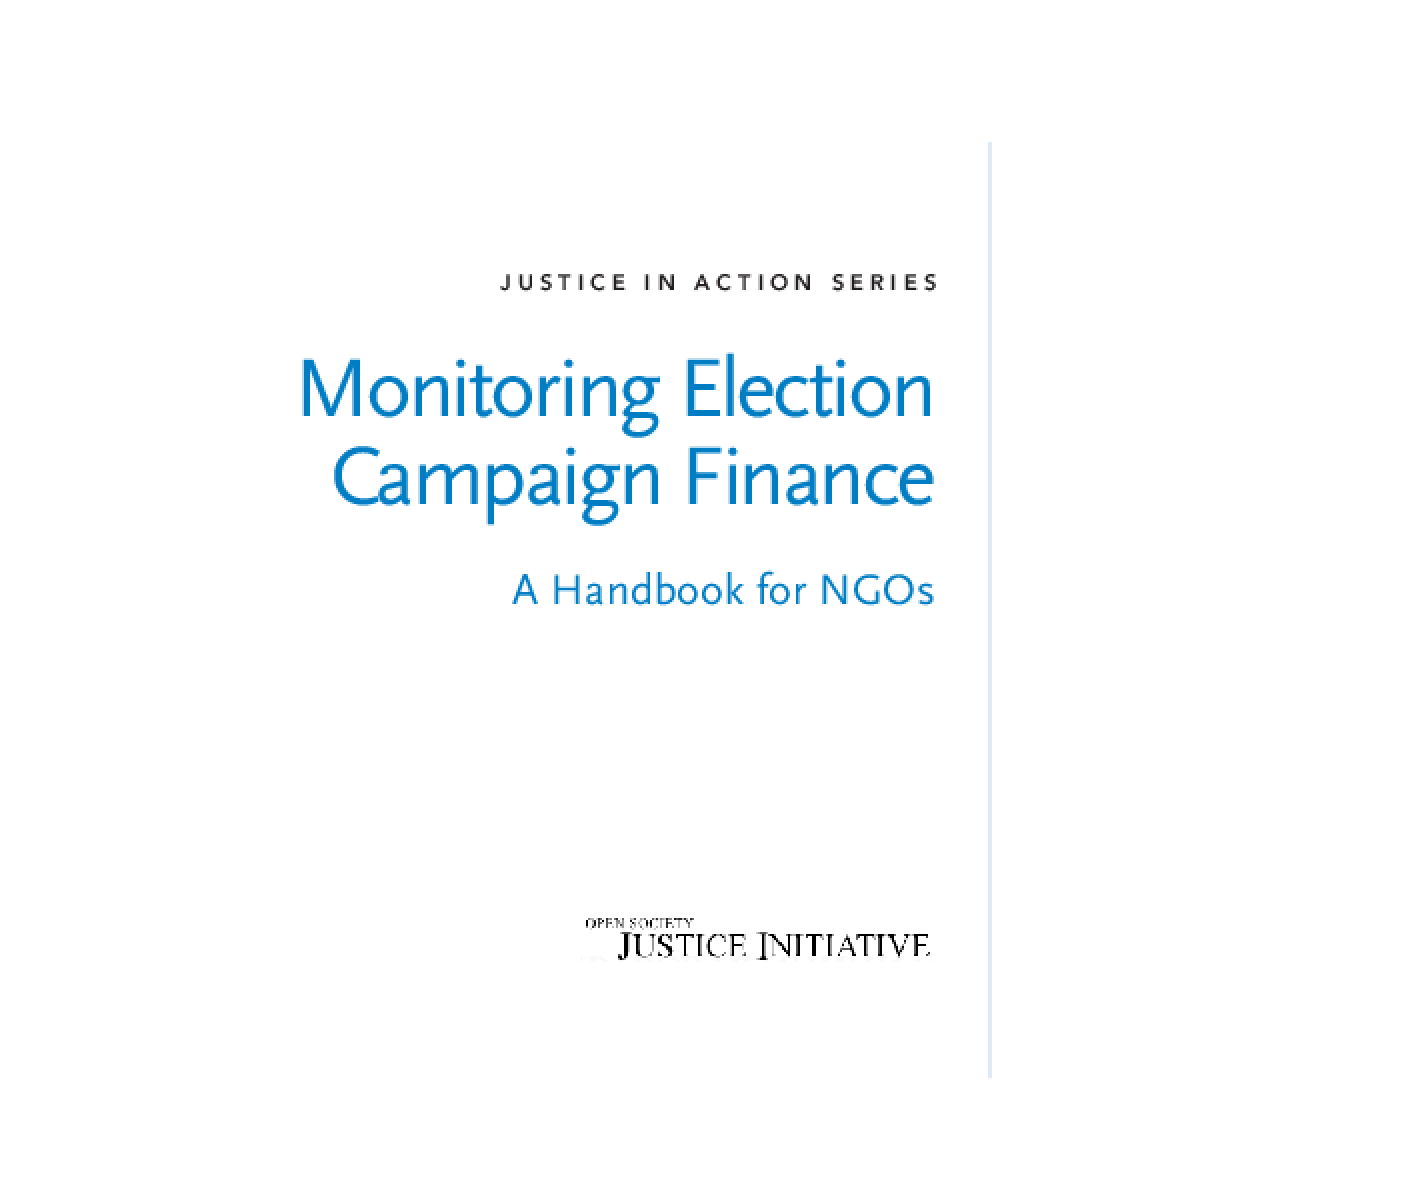 Monitoring Election Campaign Finance: A Handbook for NGOs